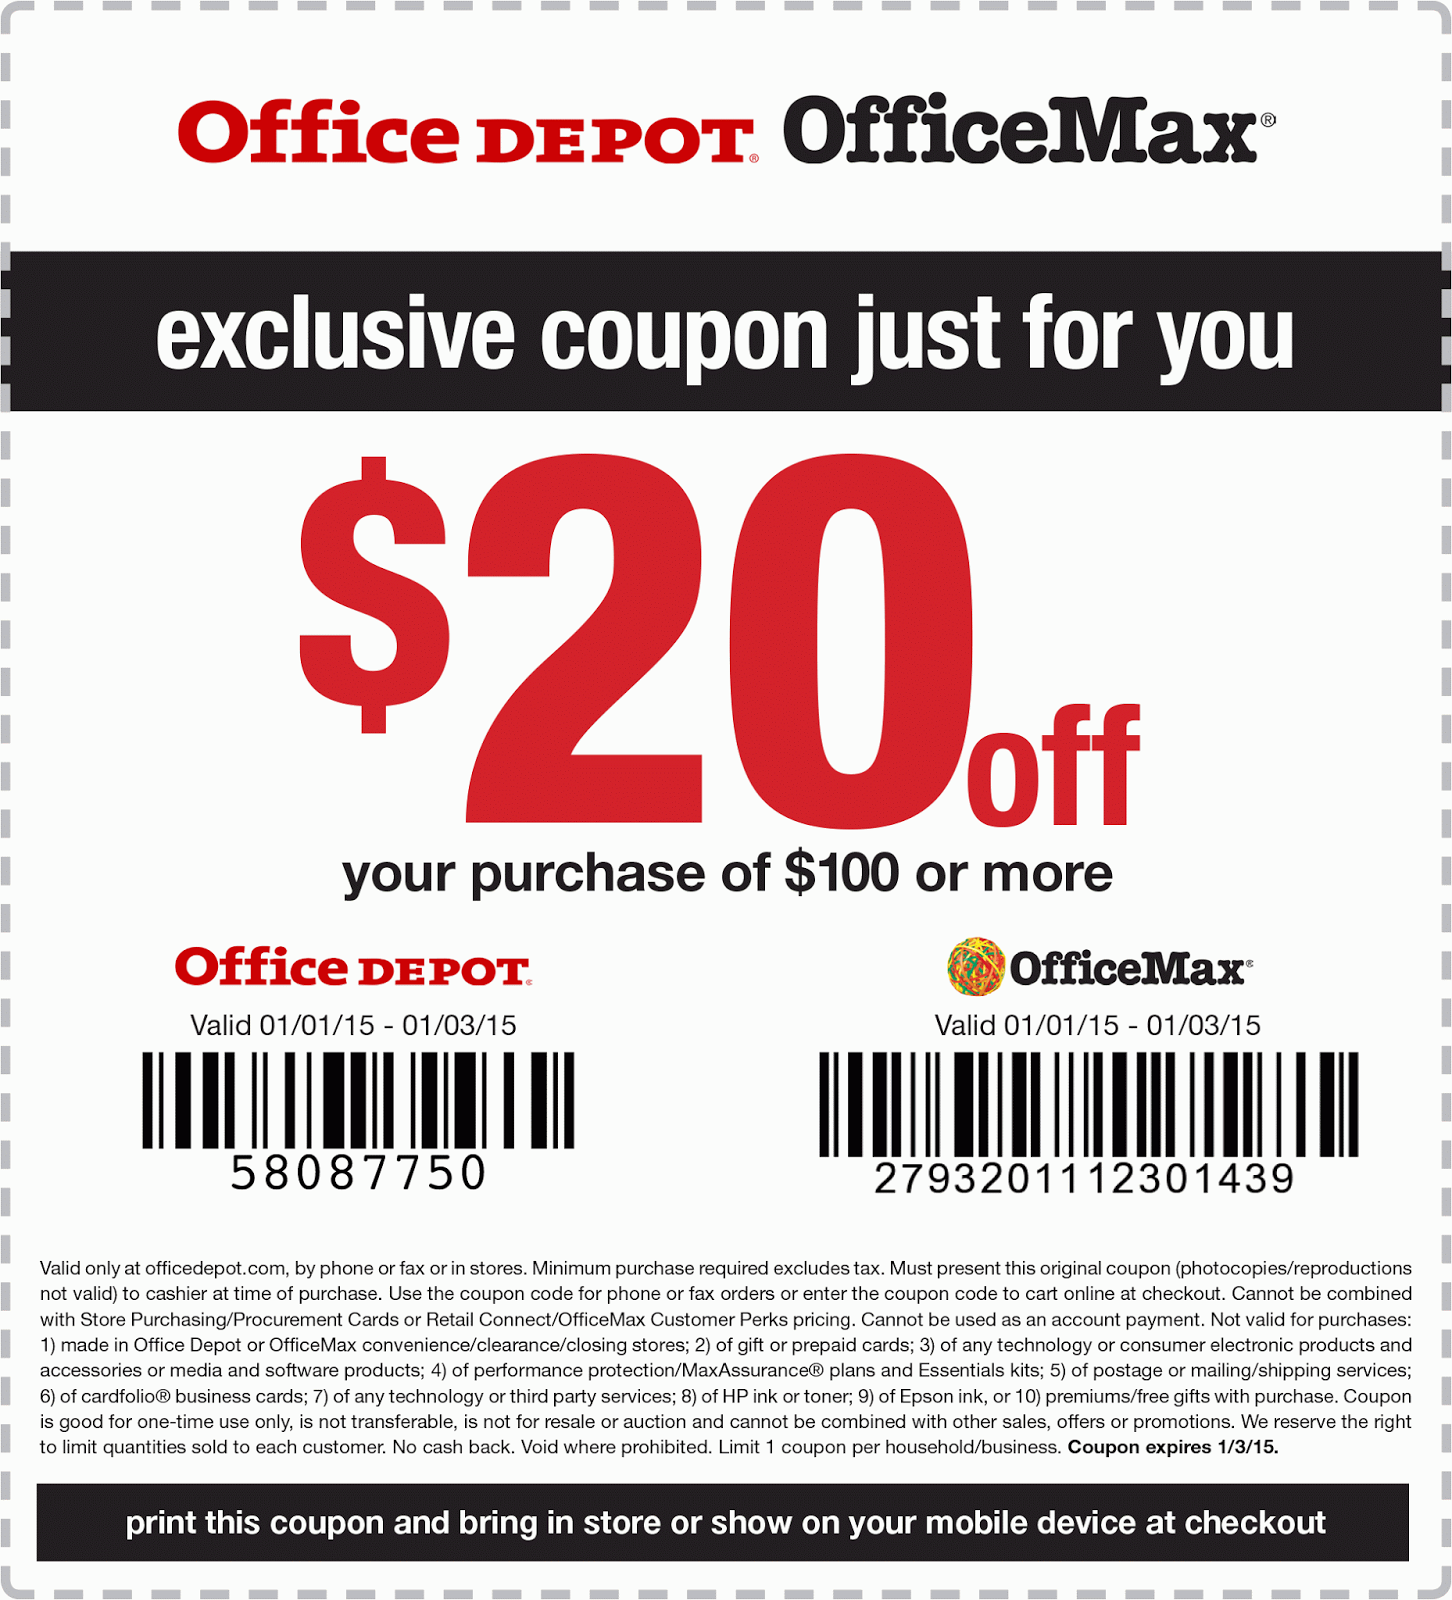 Home depot coupon code 10